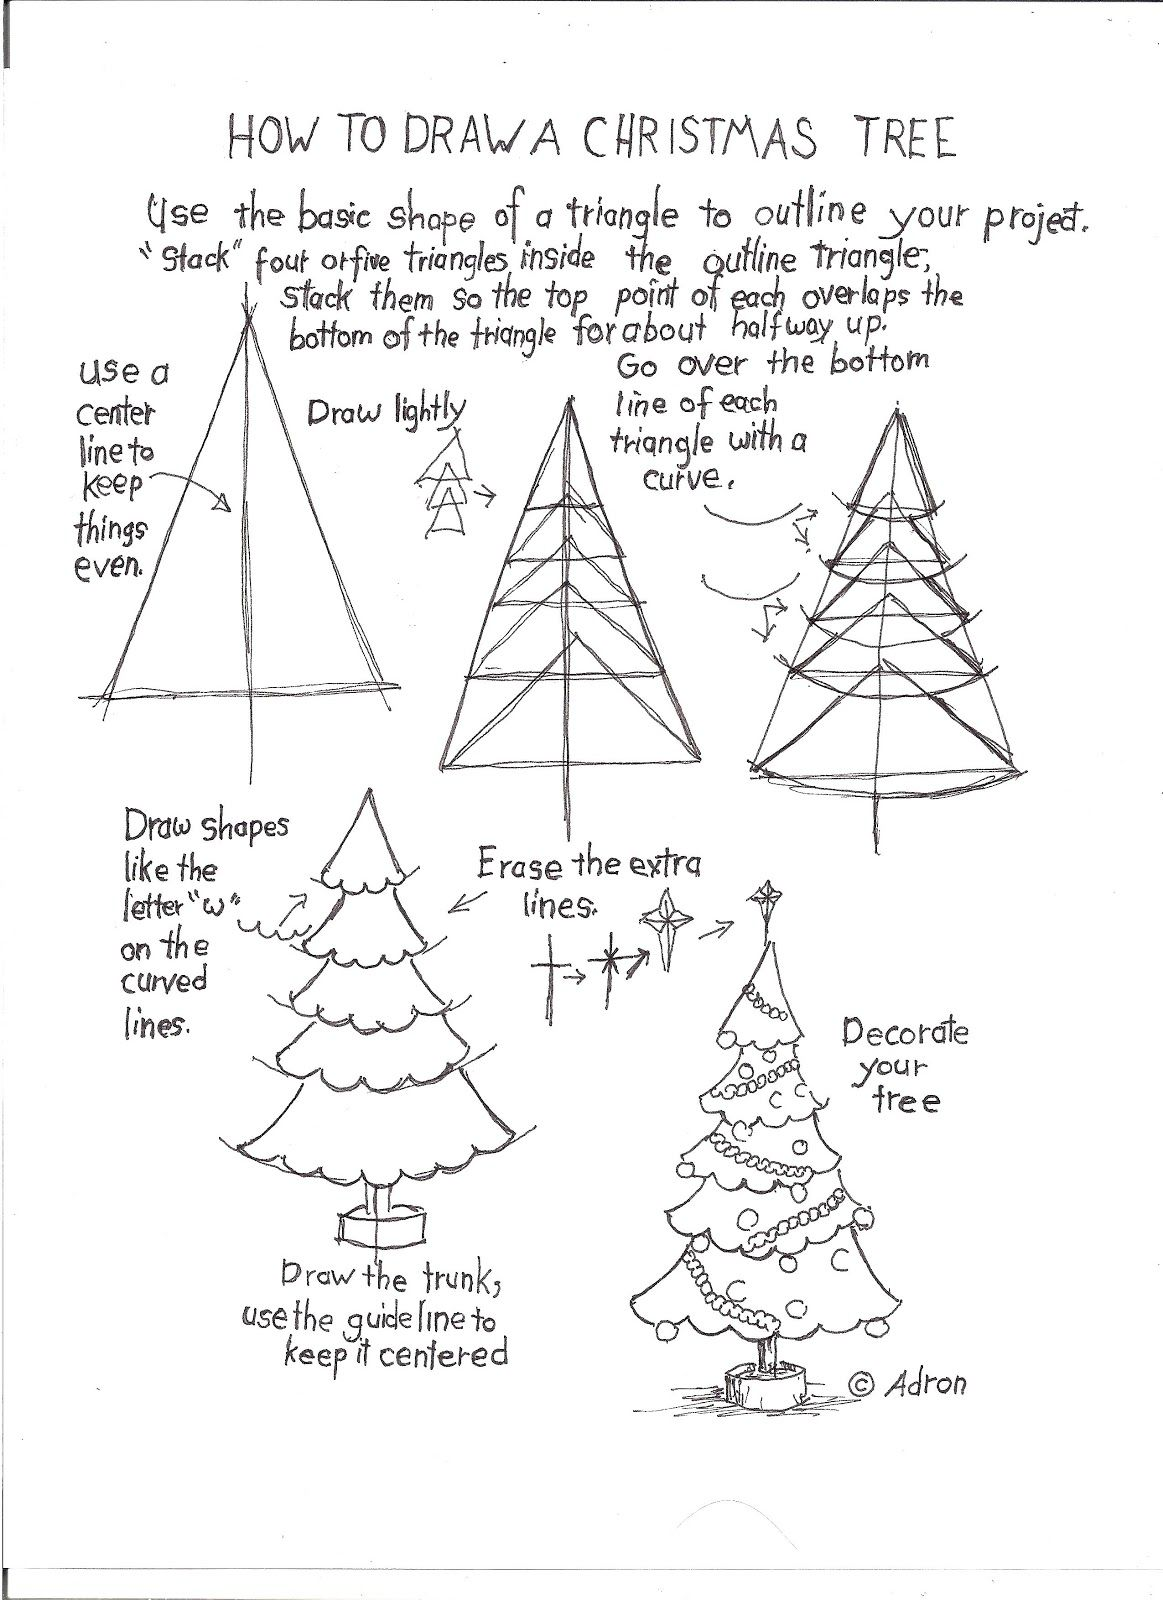 Pin By Adron On How To Draw Worksheets I Designed